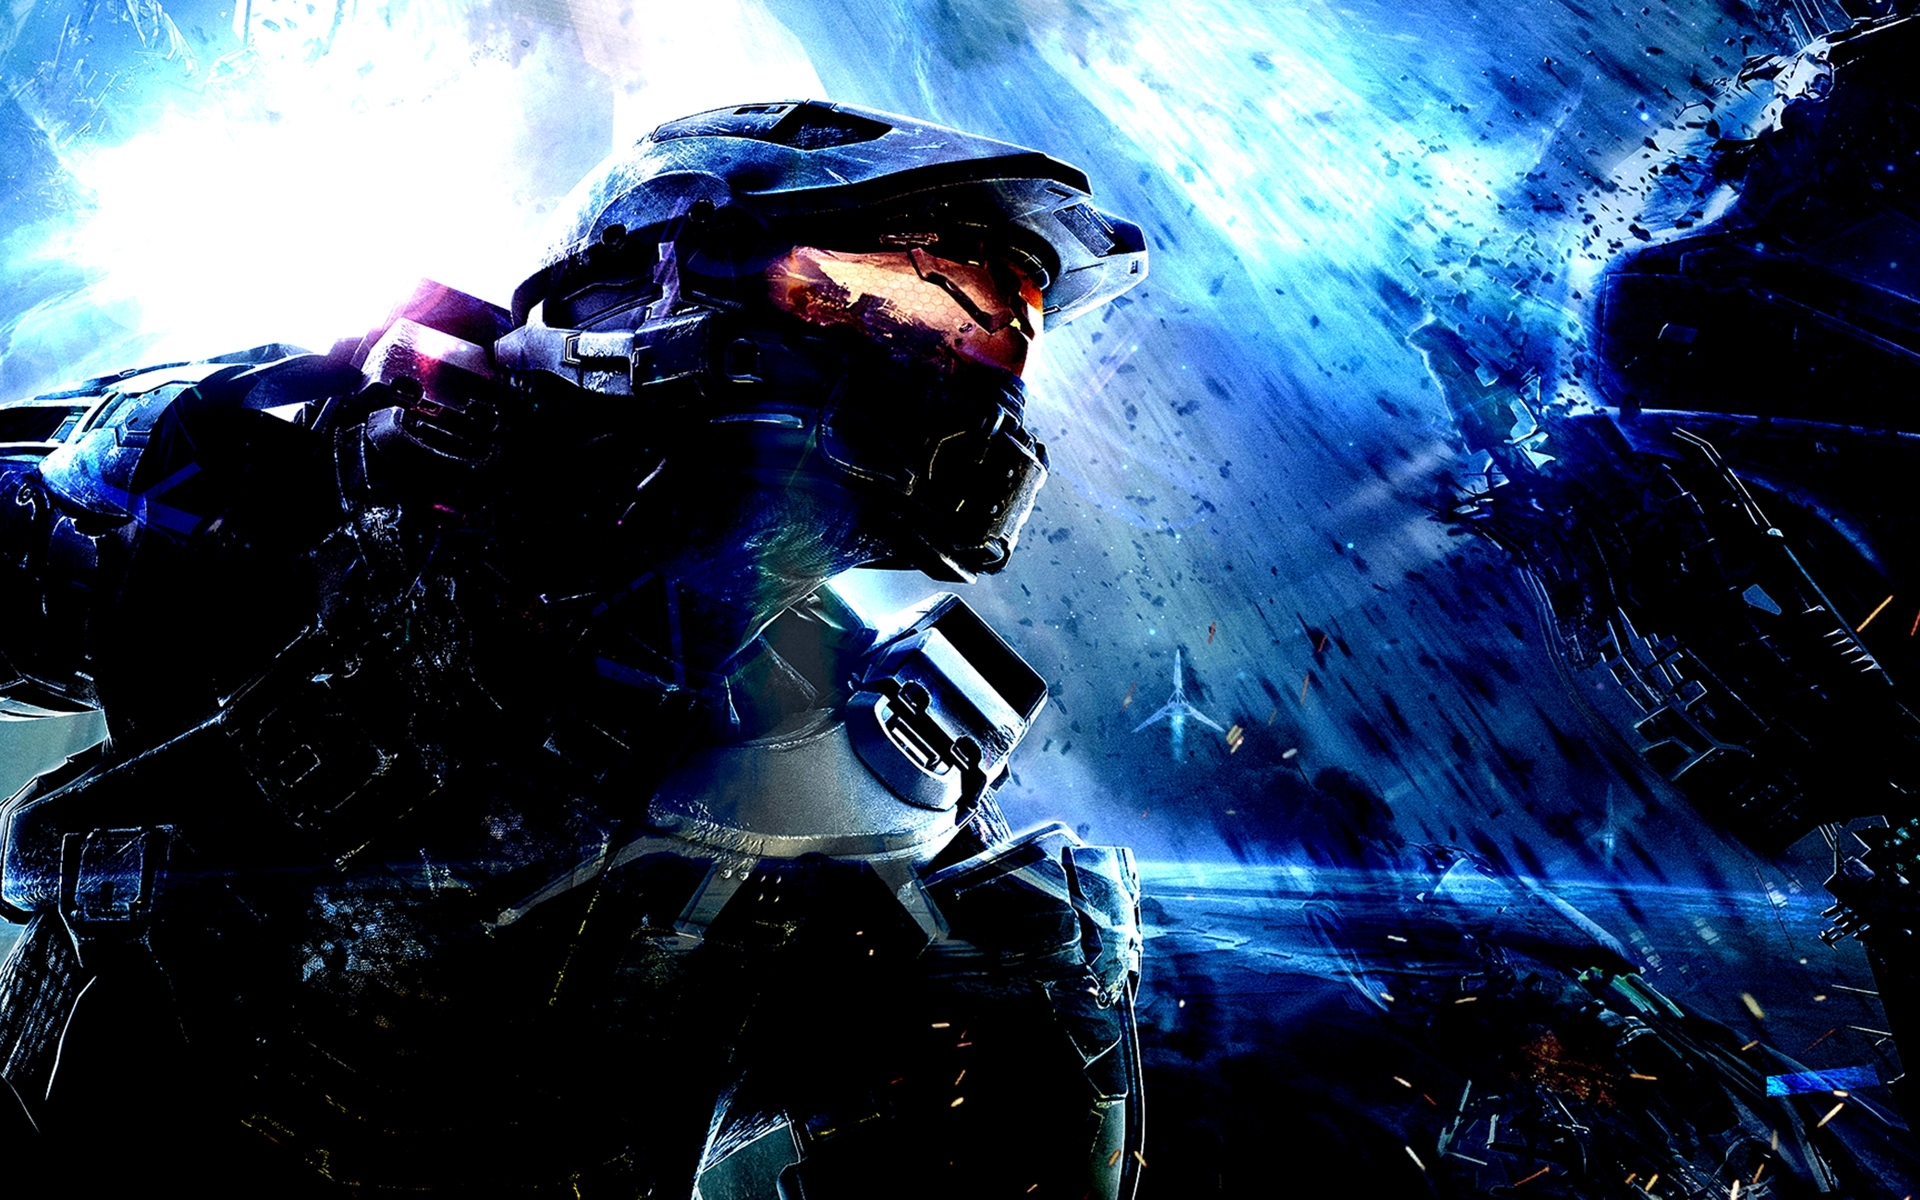 halo 5 wallpapers